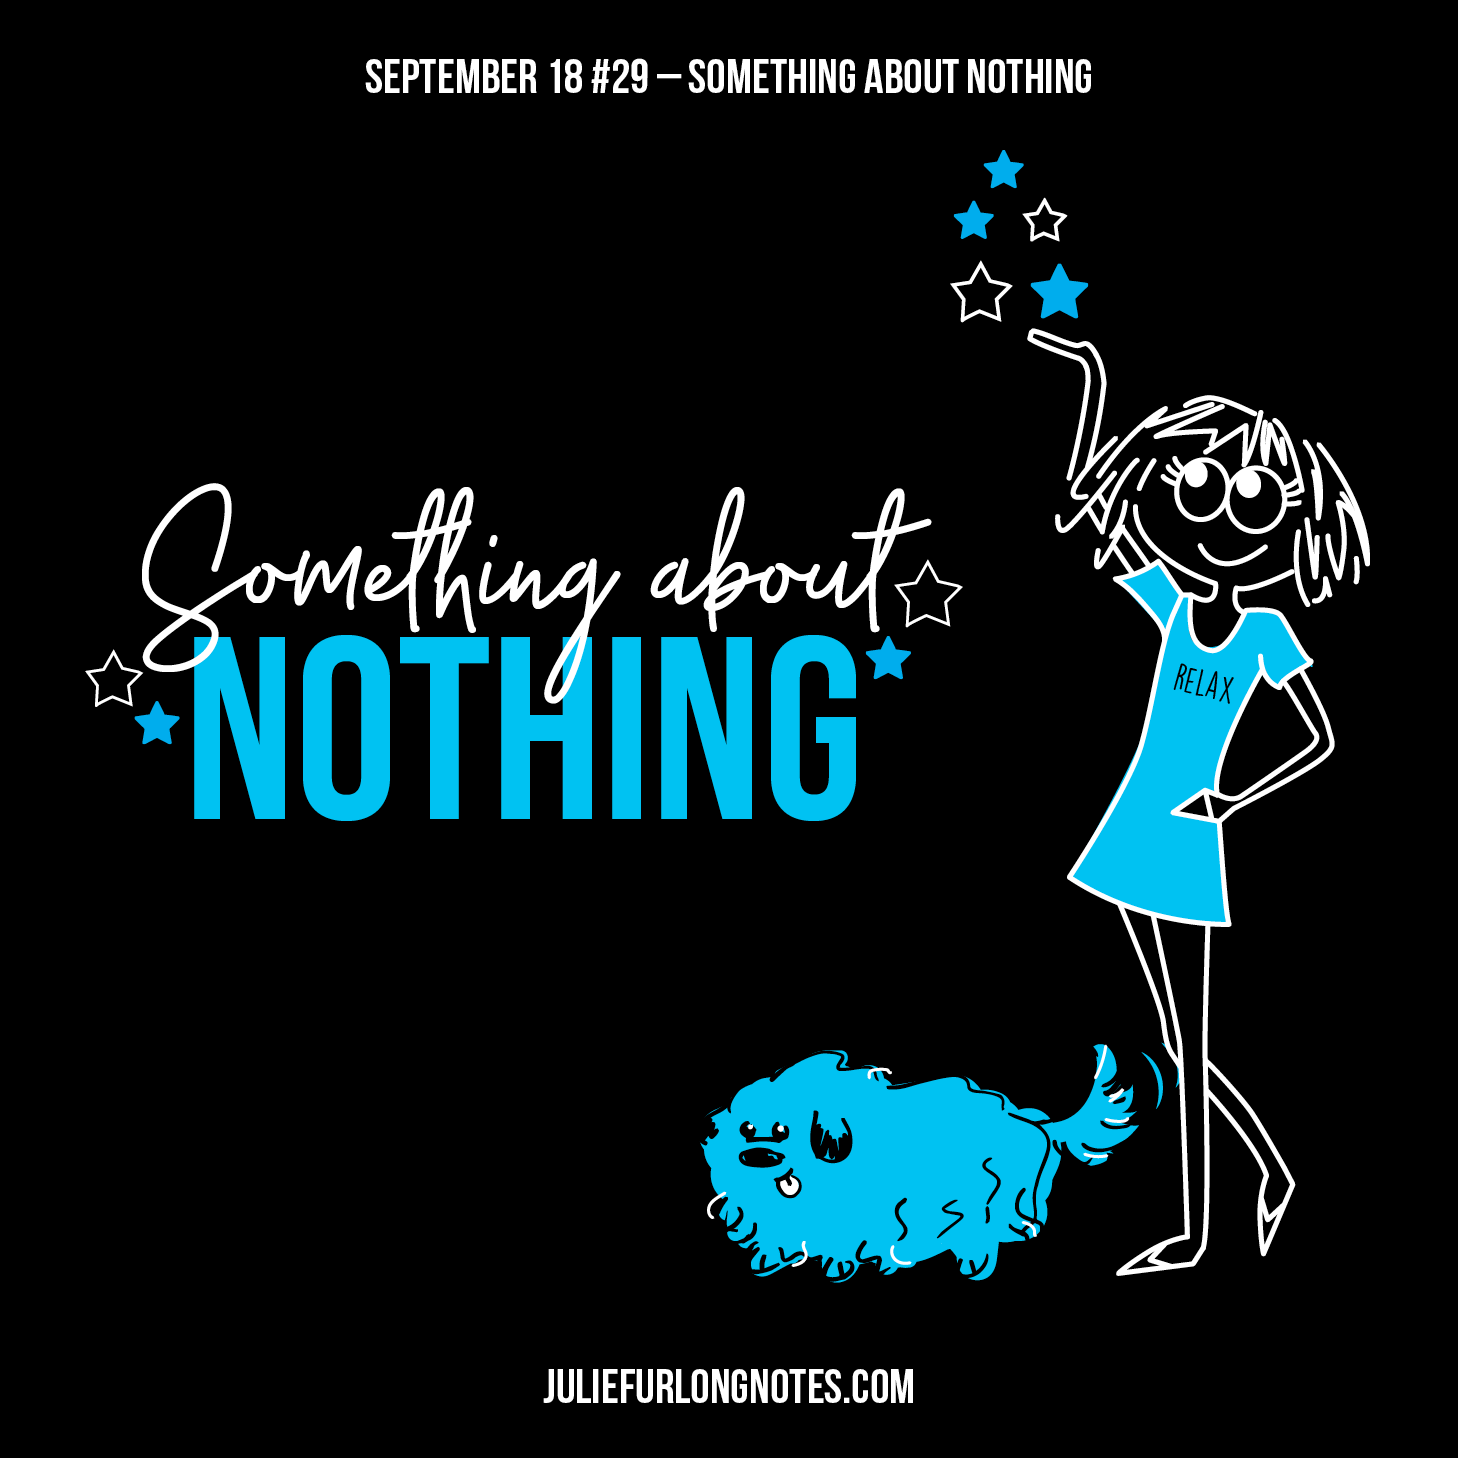 Julie-Furlong-Notes-Something-about-Nothing-featured